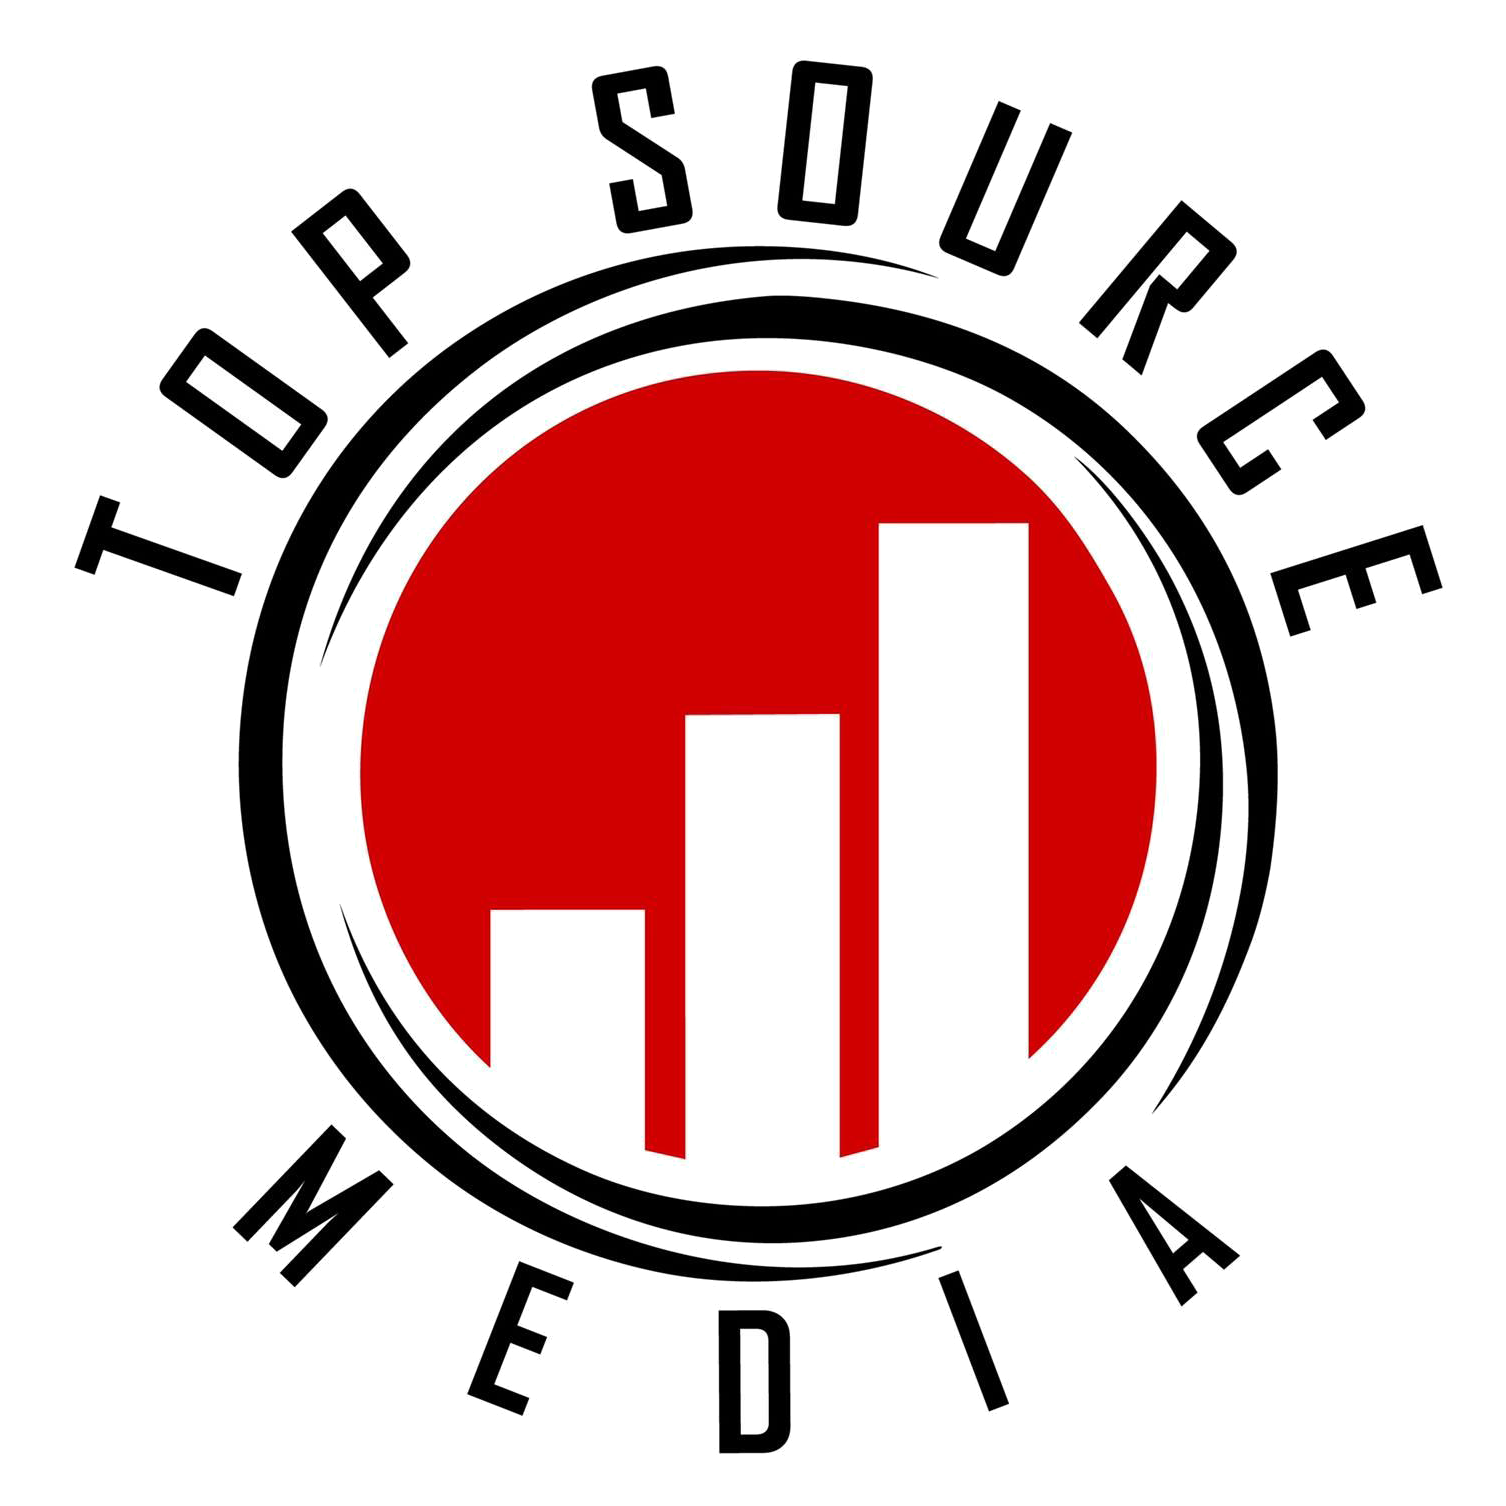 Top Source Marketing & Media - Bainbridge, GA 39819 - (229)495-6305 | ShowMeLocal.com